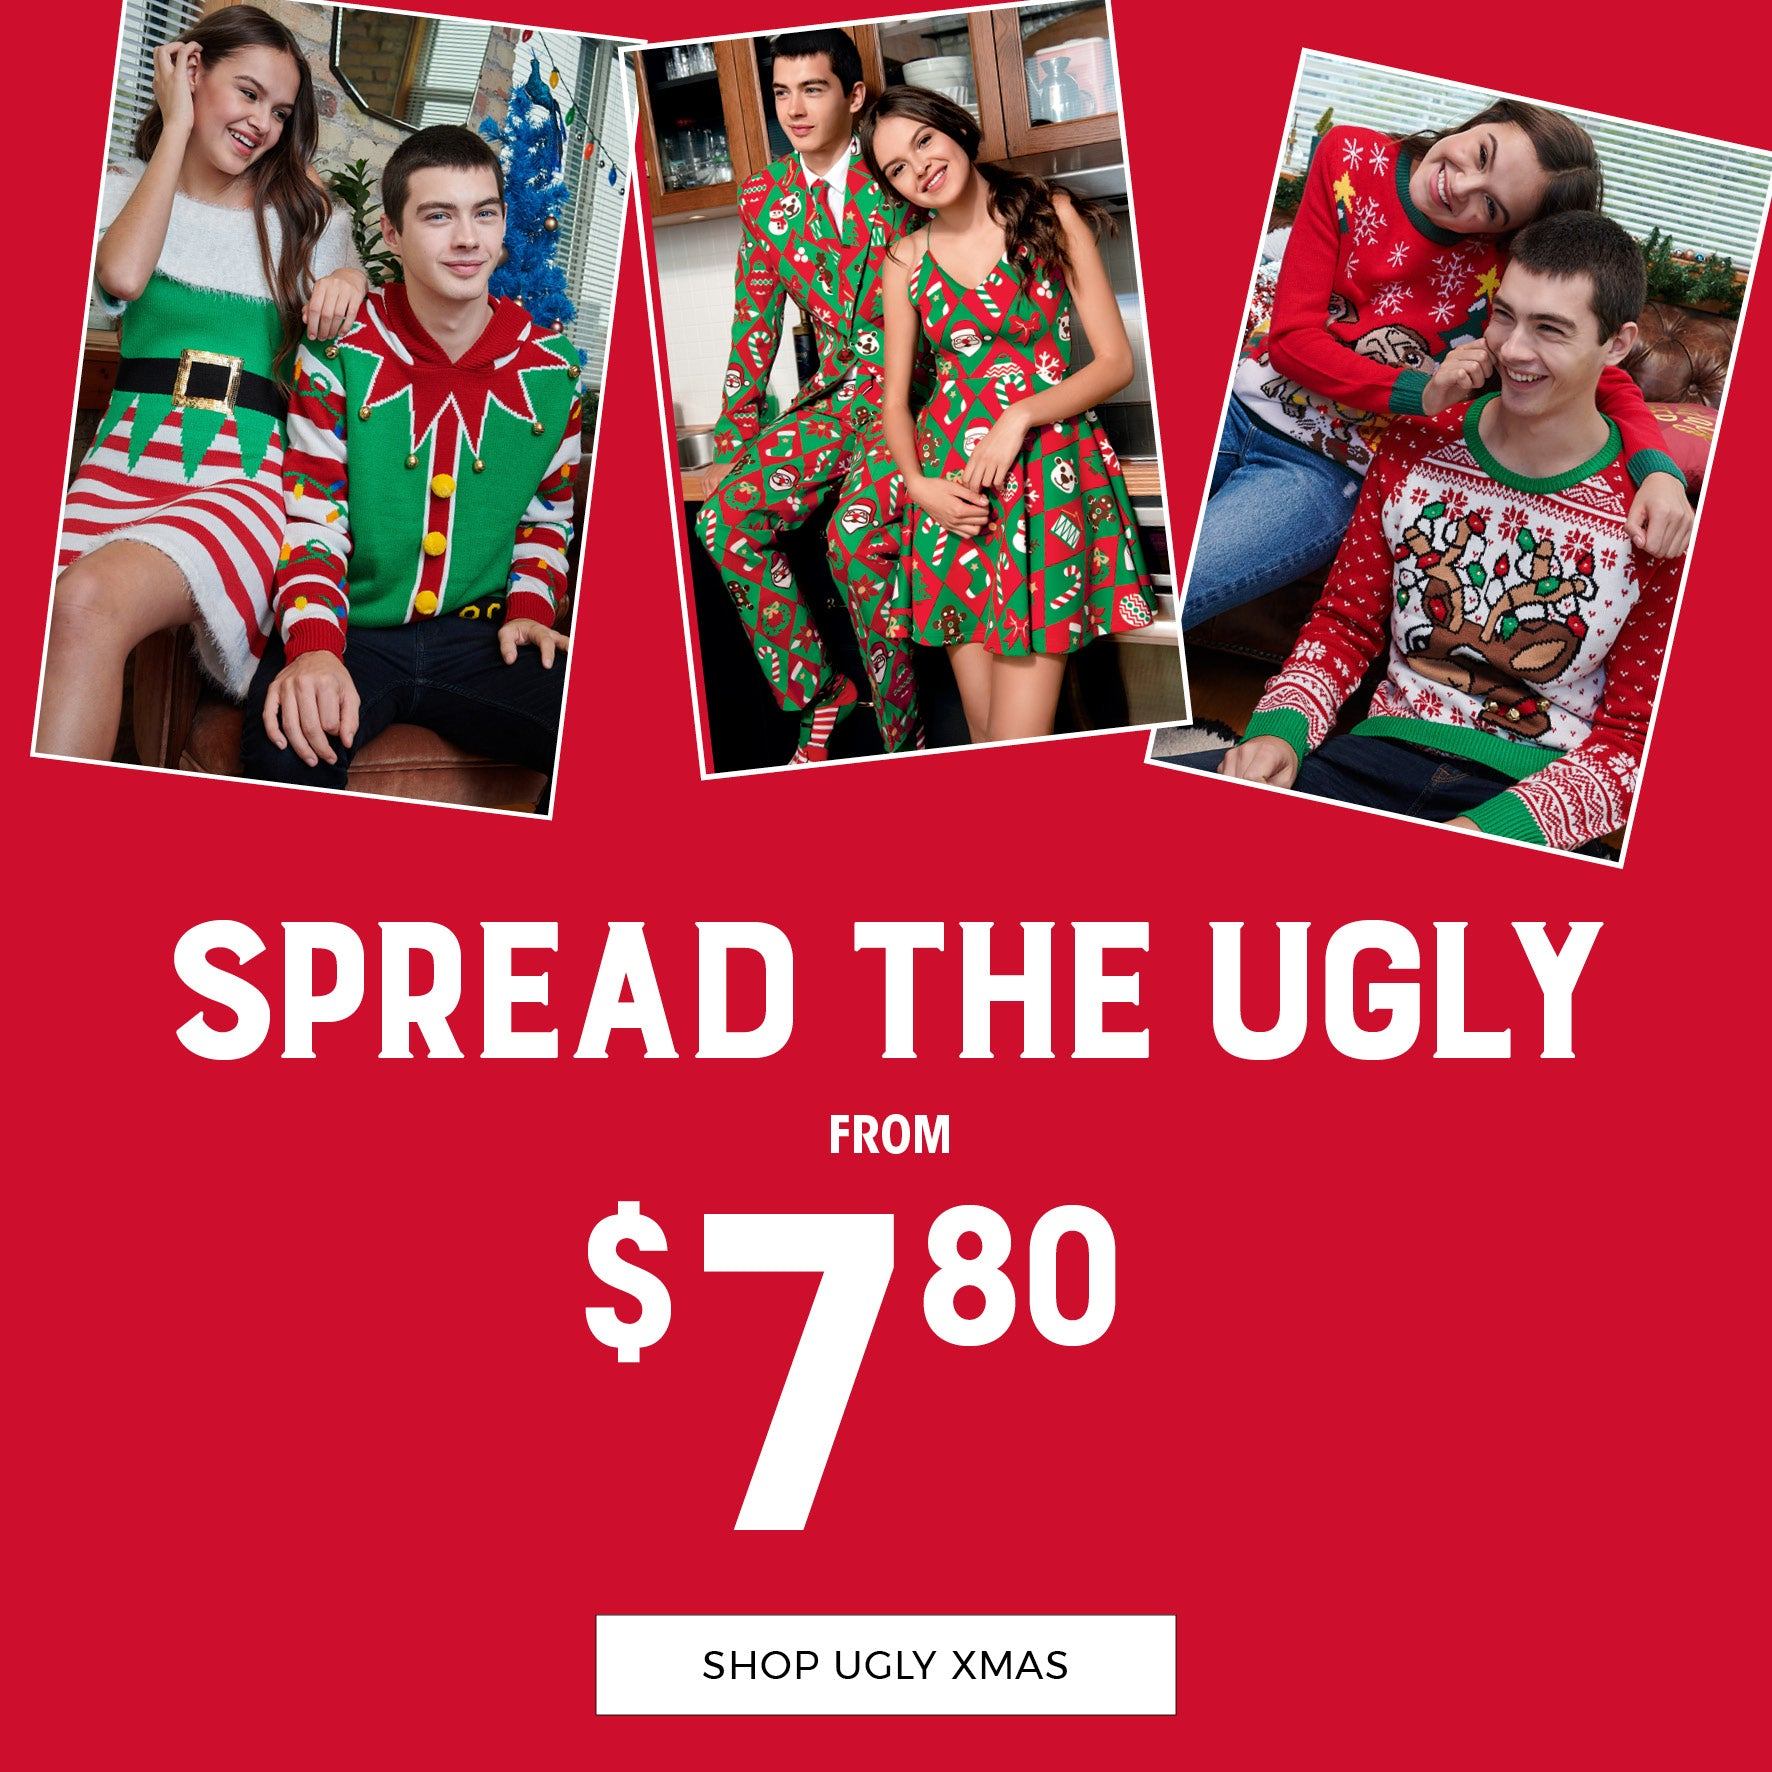 Stitches | Spread The Ugly - Shop Ugly Xmas from $7.80